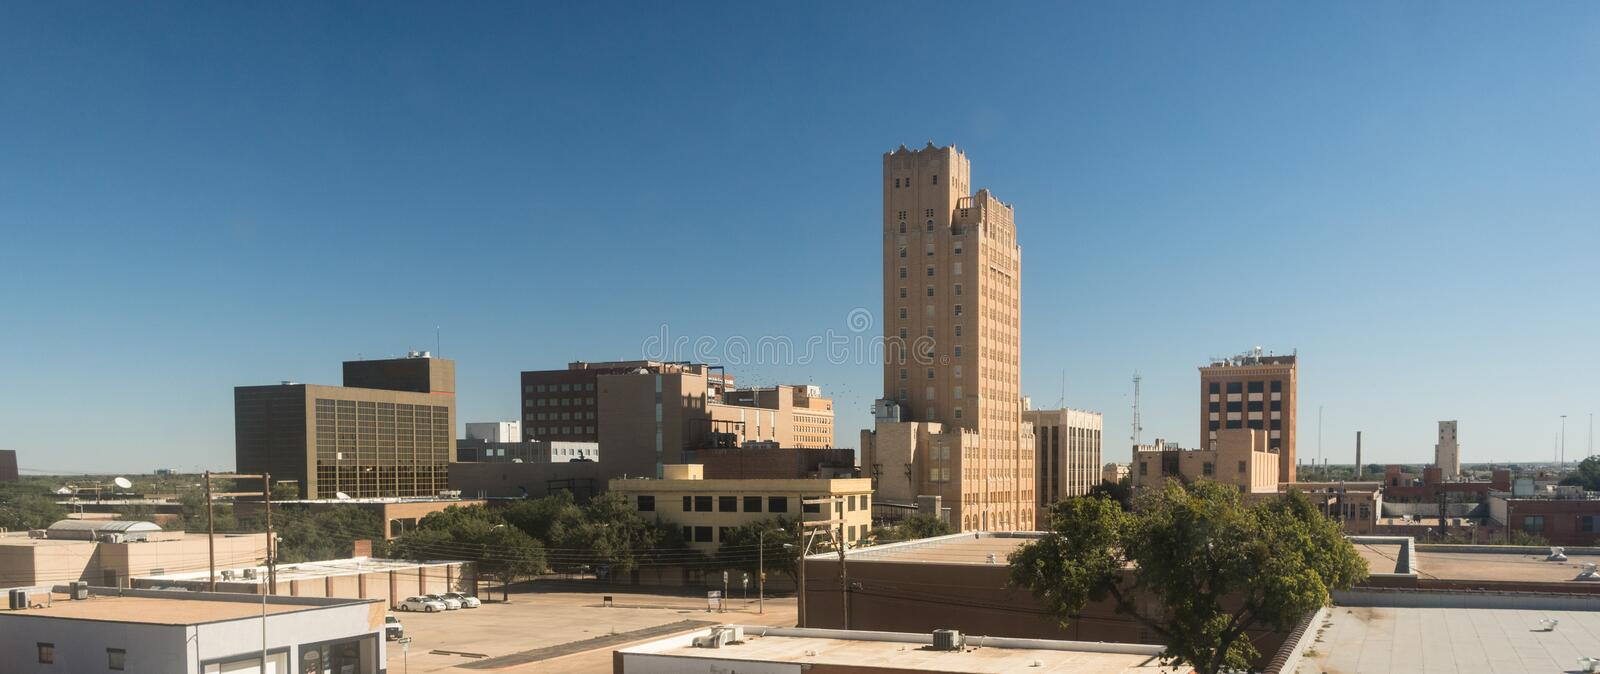 Fall Afternoon Blue Sky Lubbock Texas Downtown City Skyline stock photography